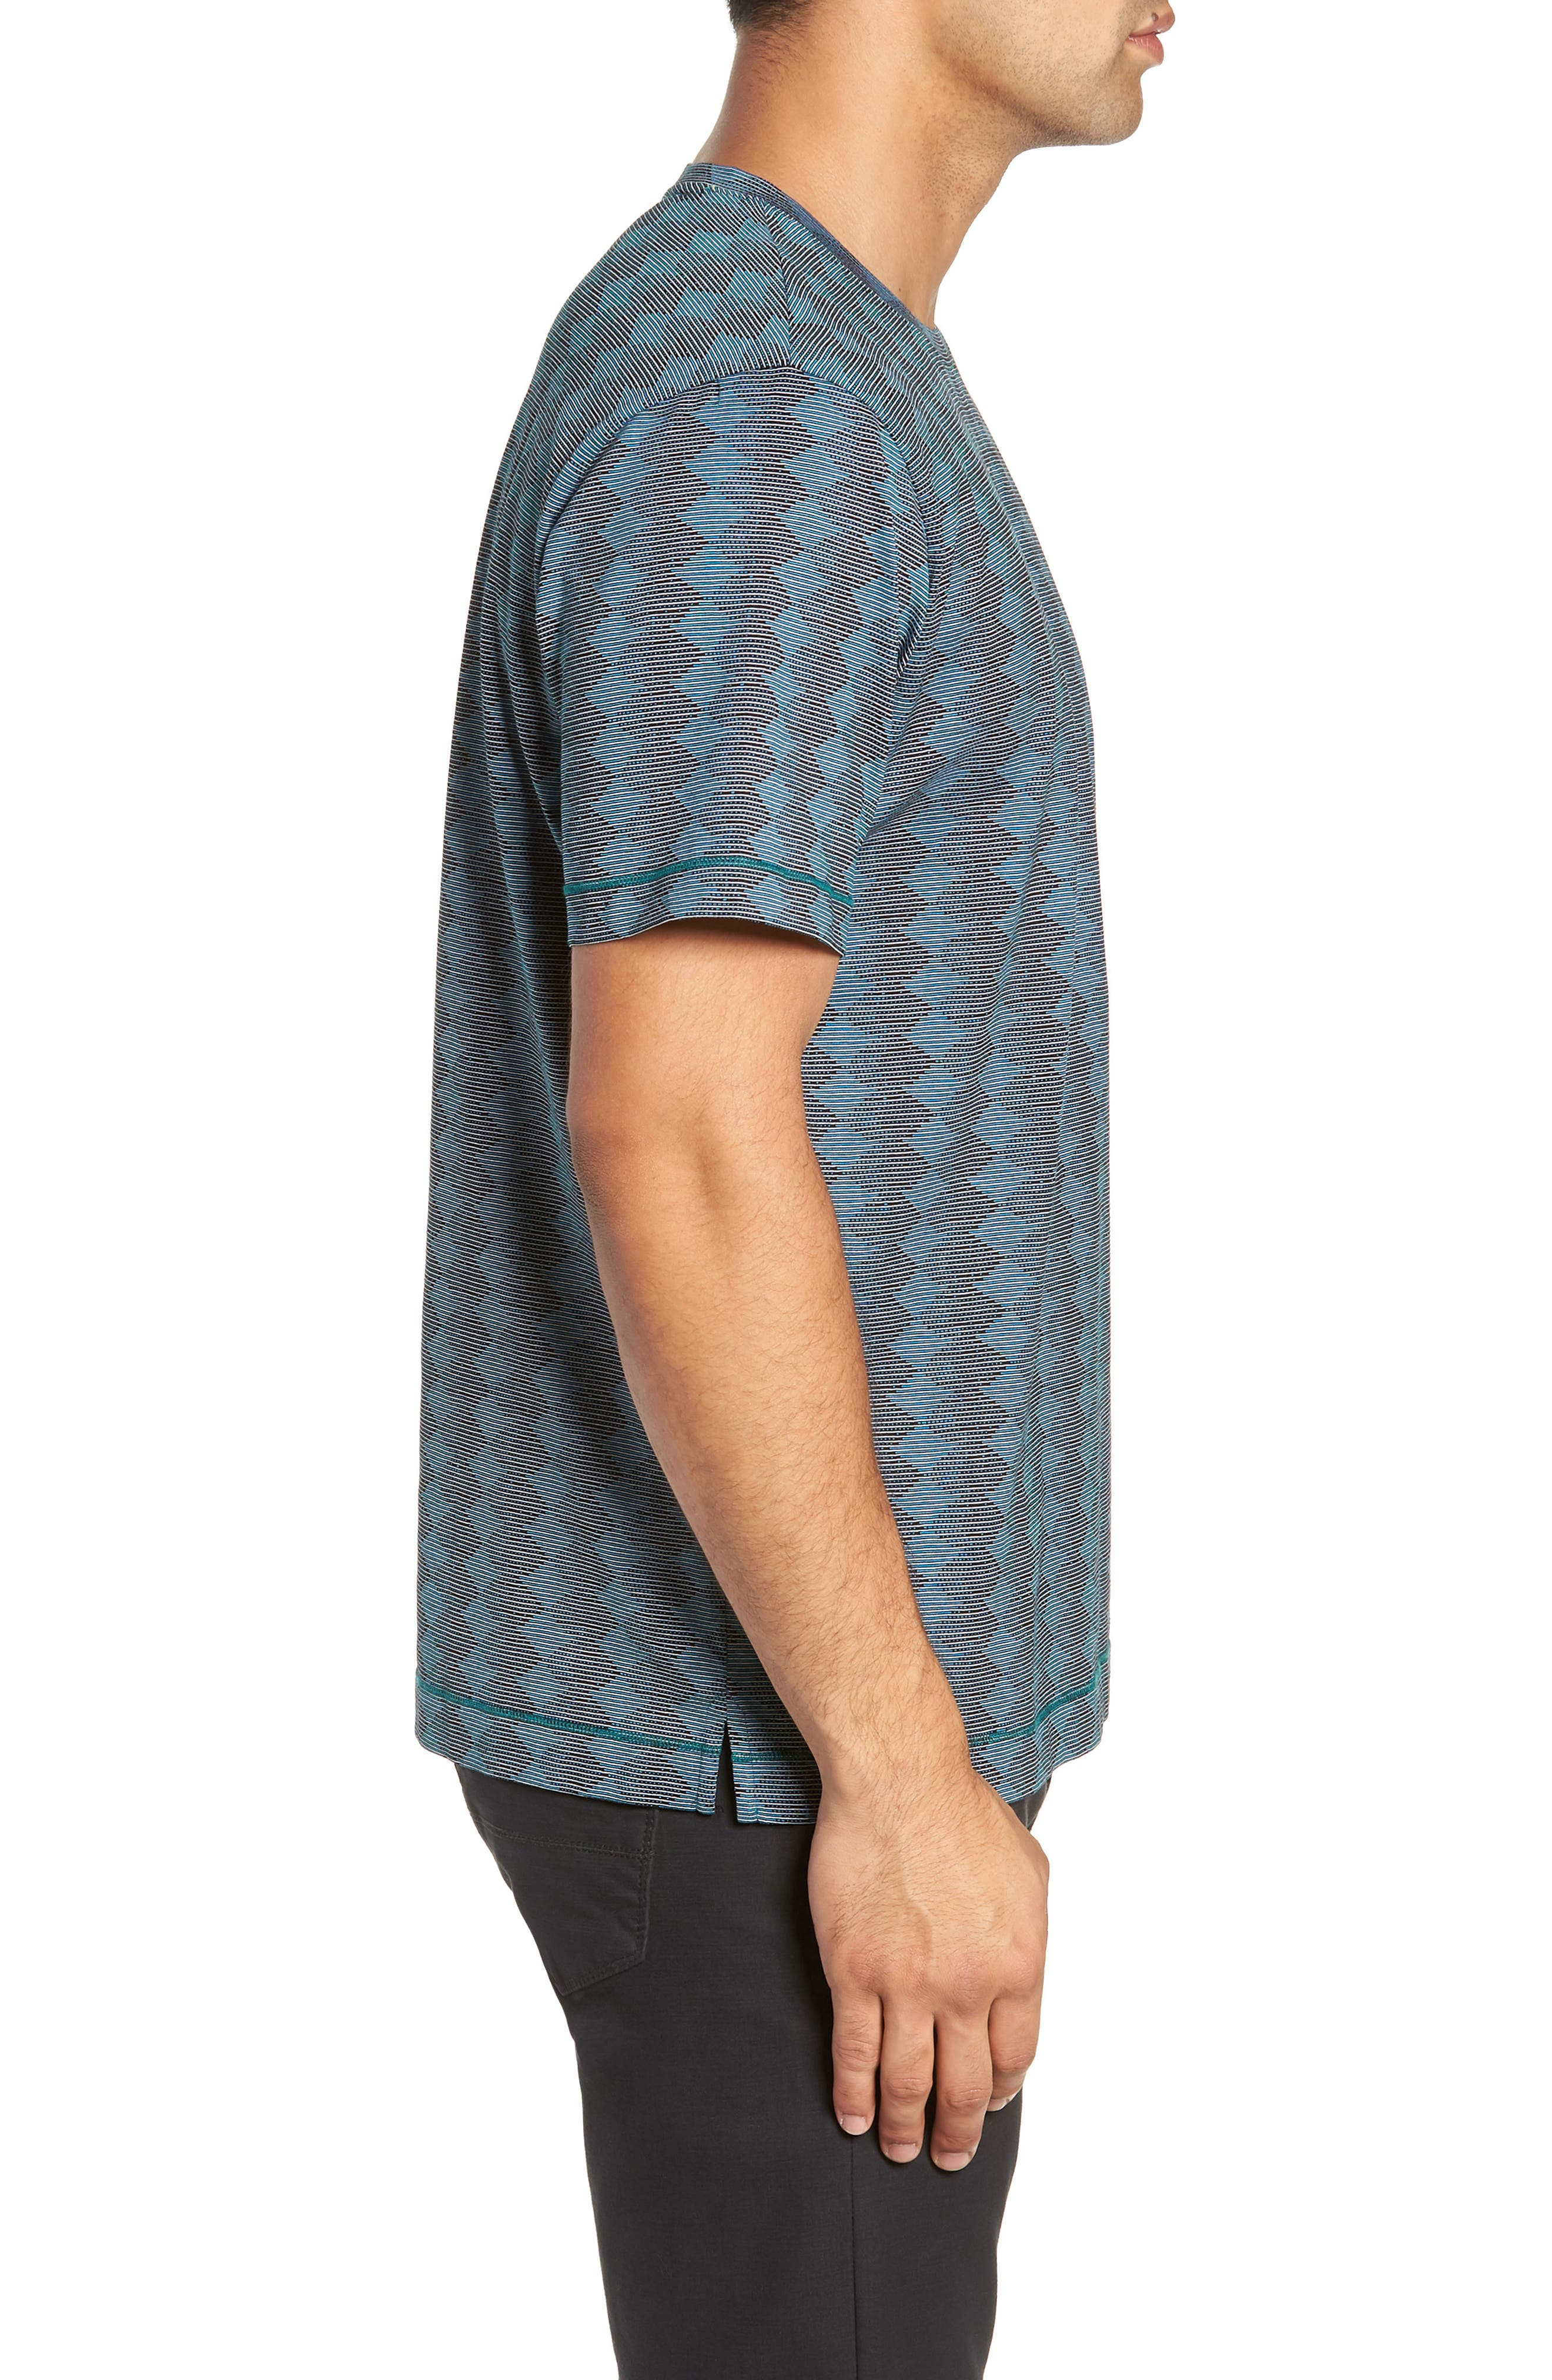 Philippe T-Shirt,                             Alternate thumbnail 3, color,                             TEAL